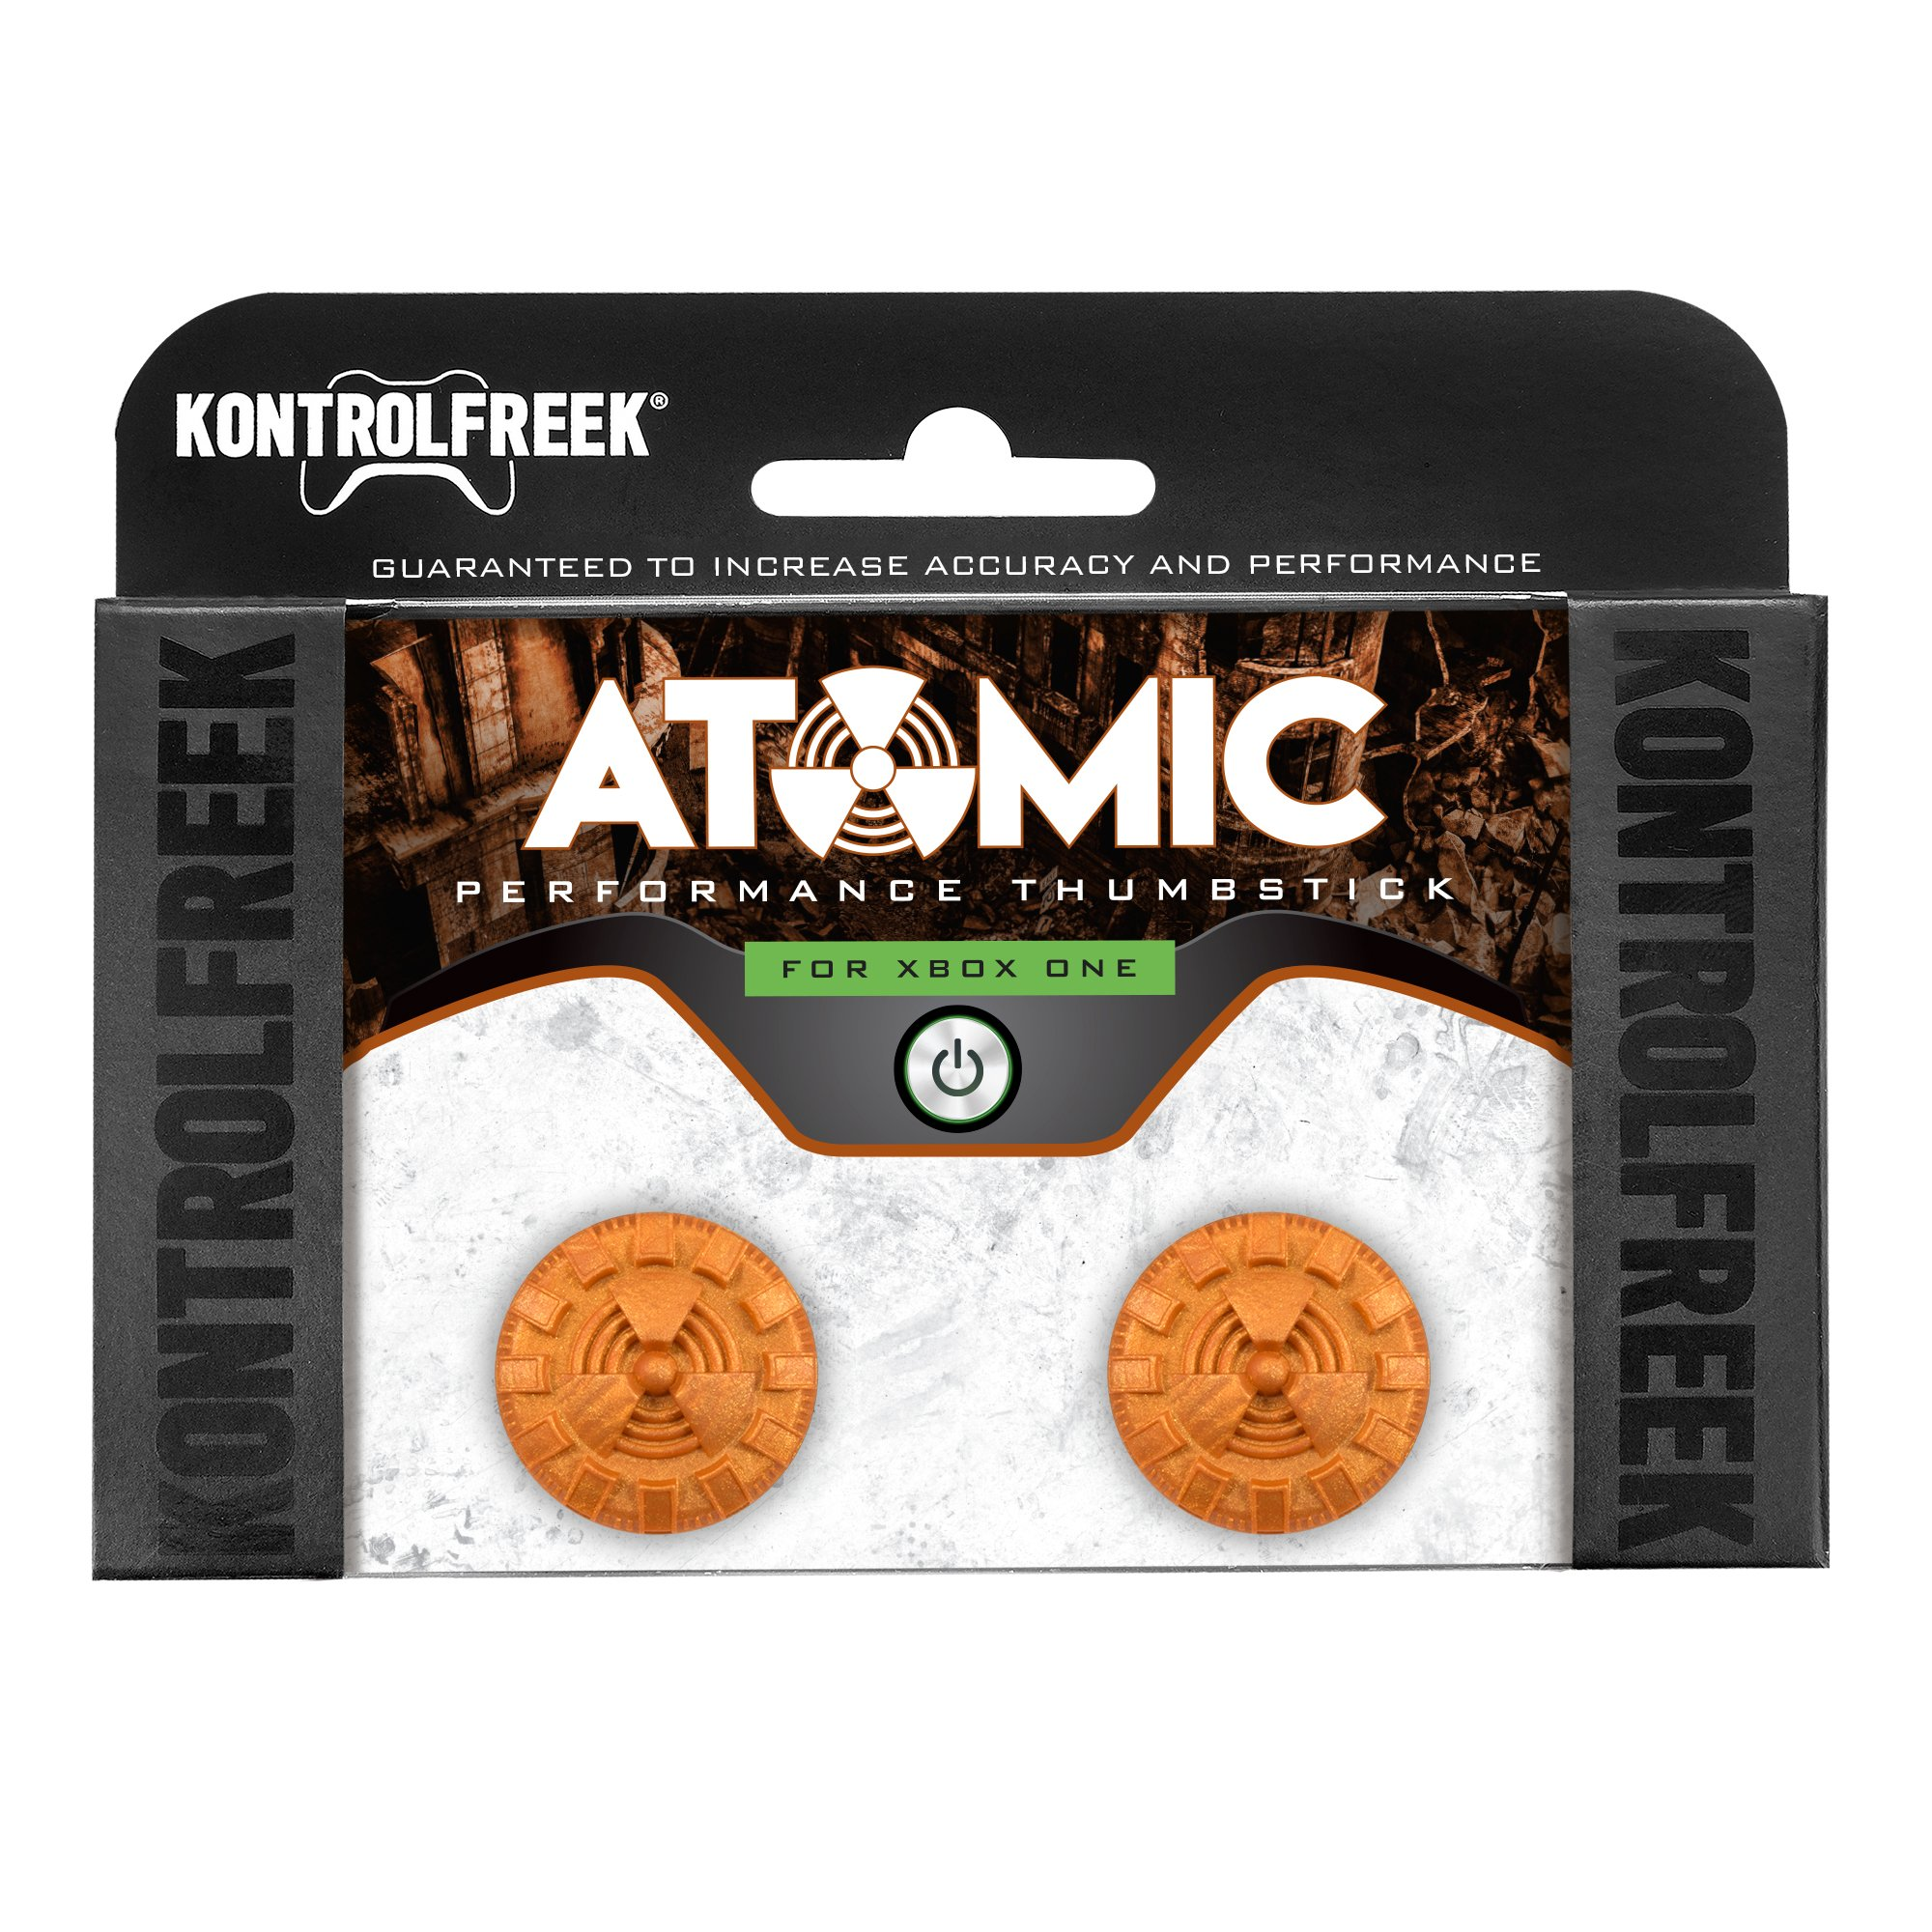 KontrolFreek Atomic Performance Thumbsticks for Xbox One...